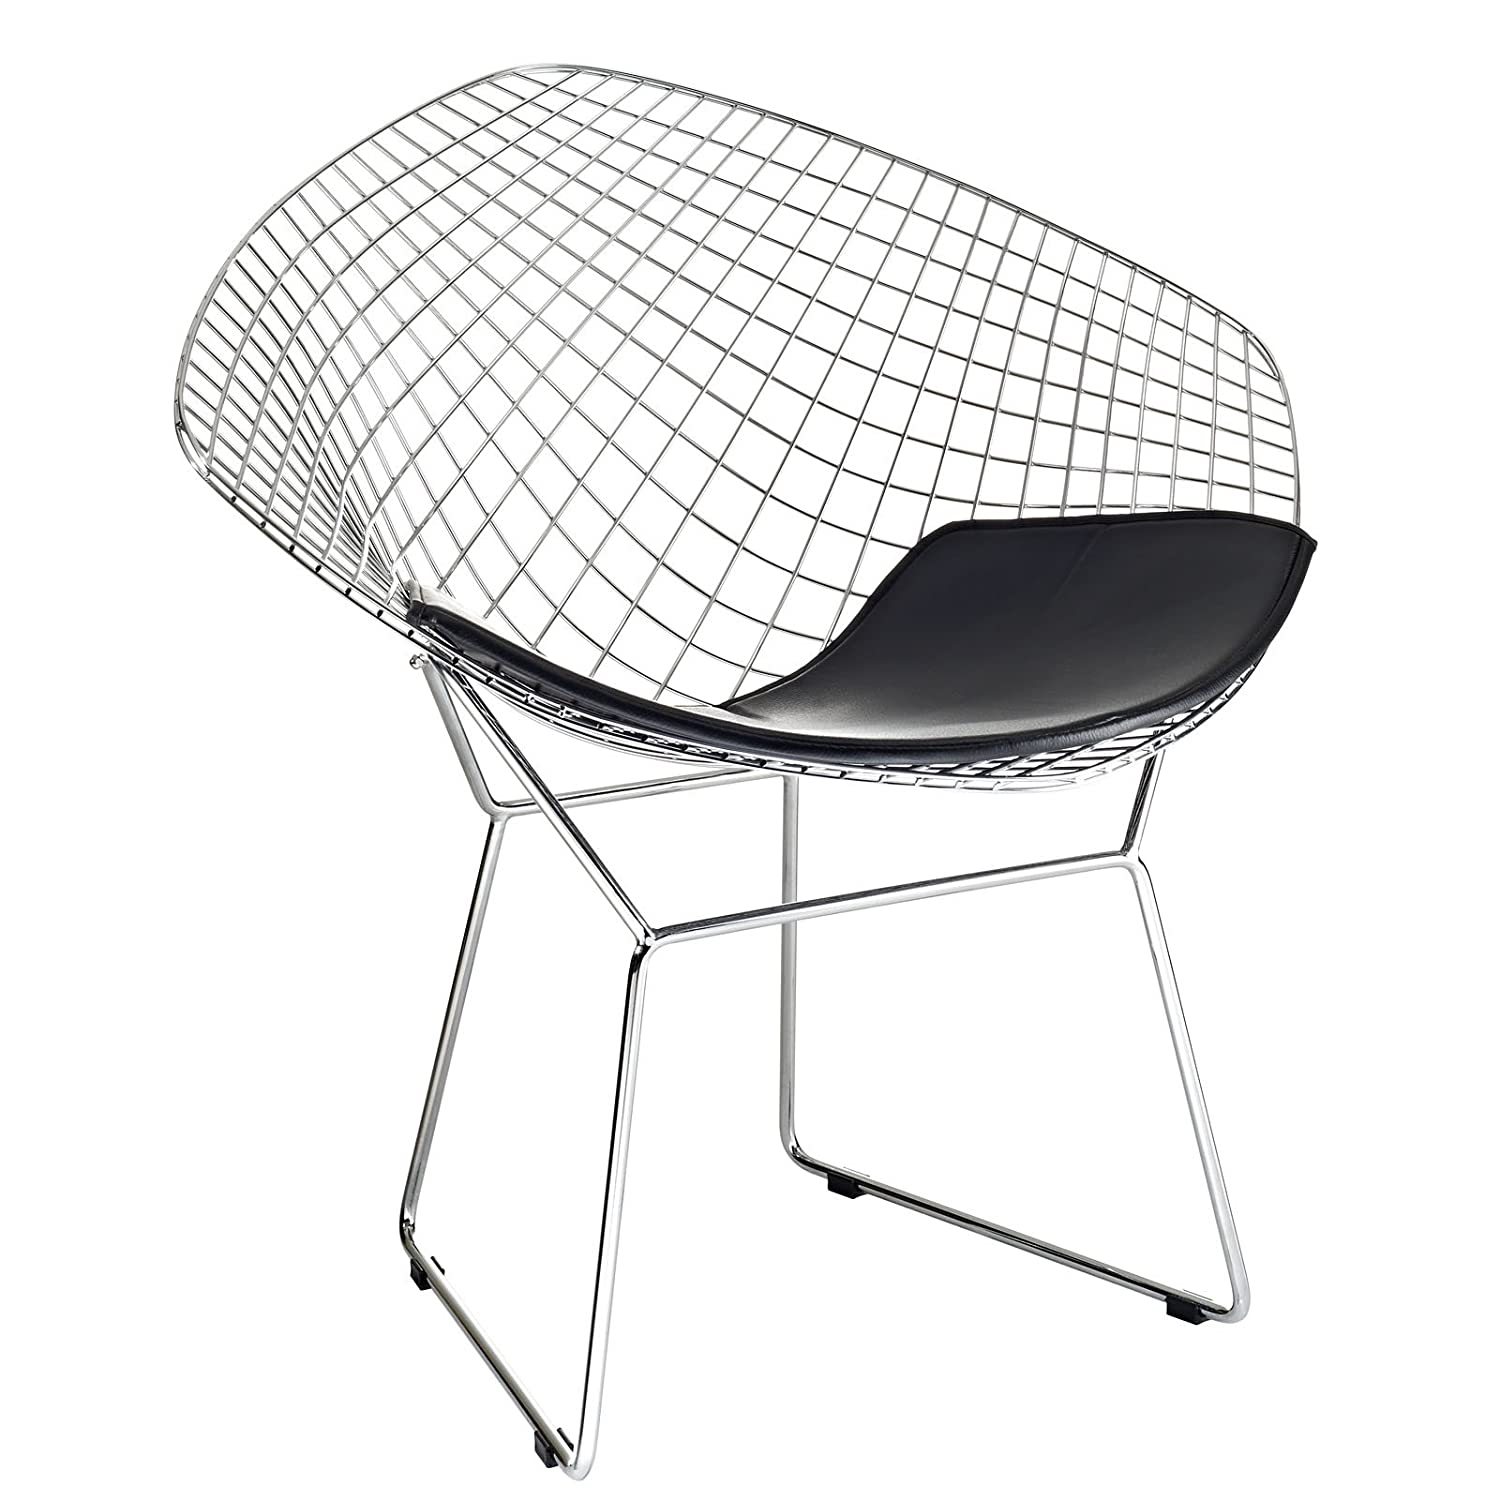 Bertoia diamond chair black - Bertoia Diamond Chair Black 5